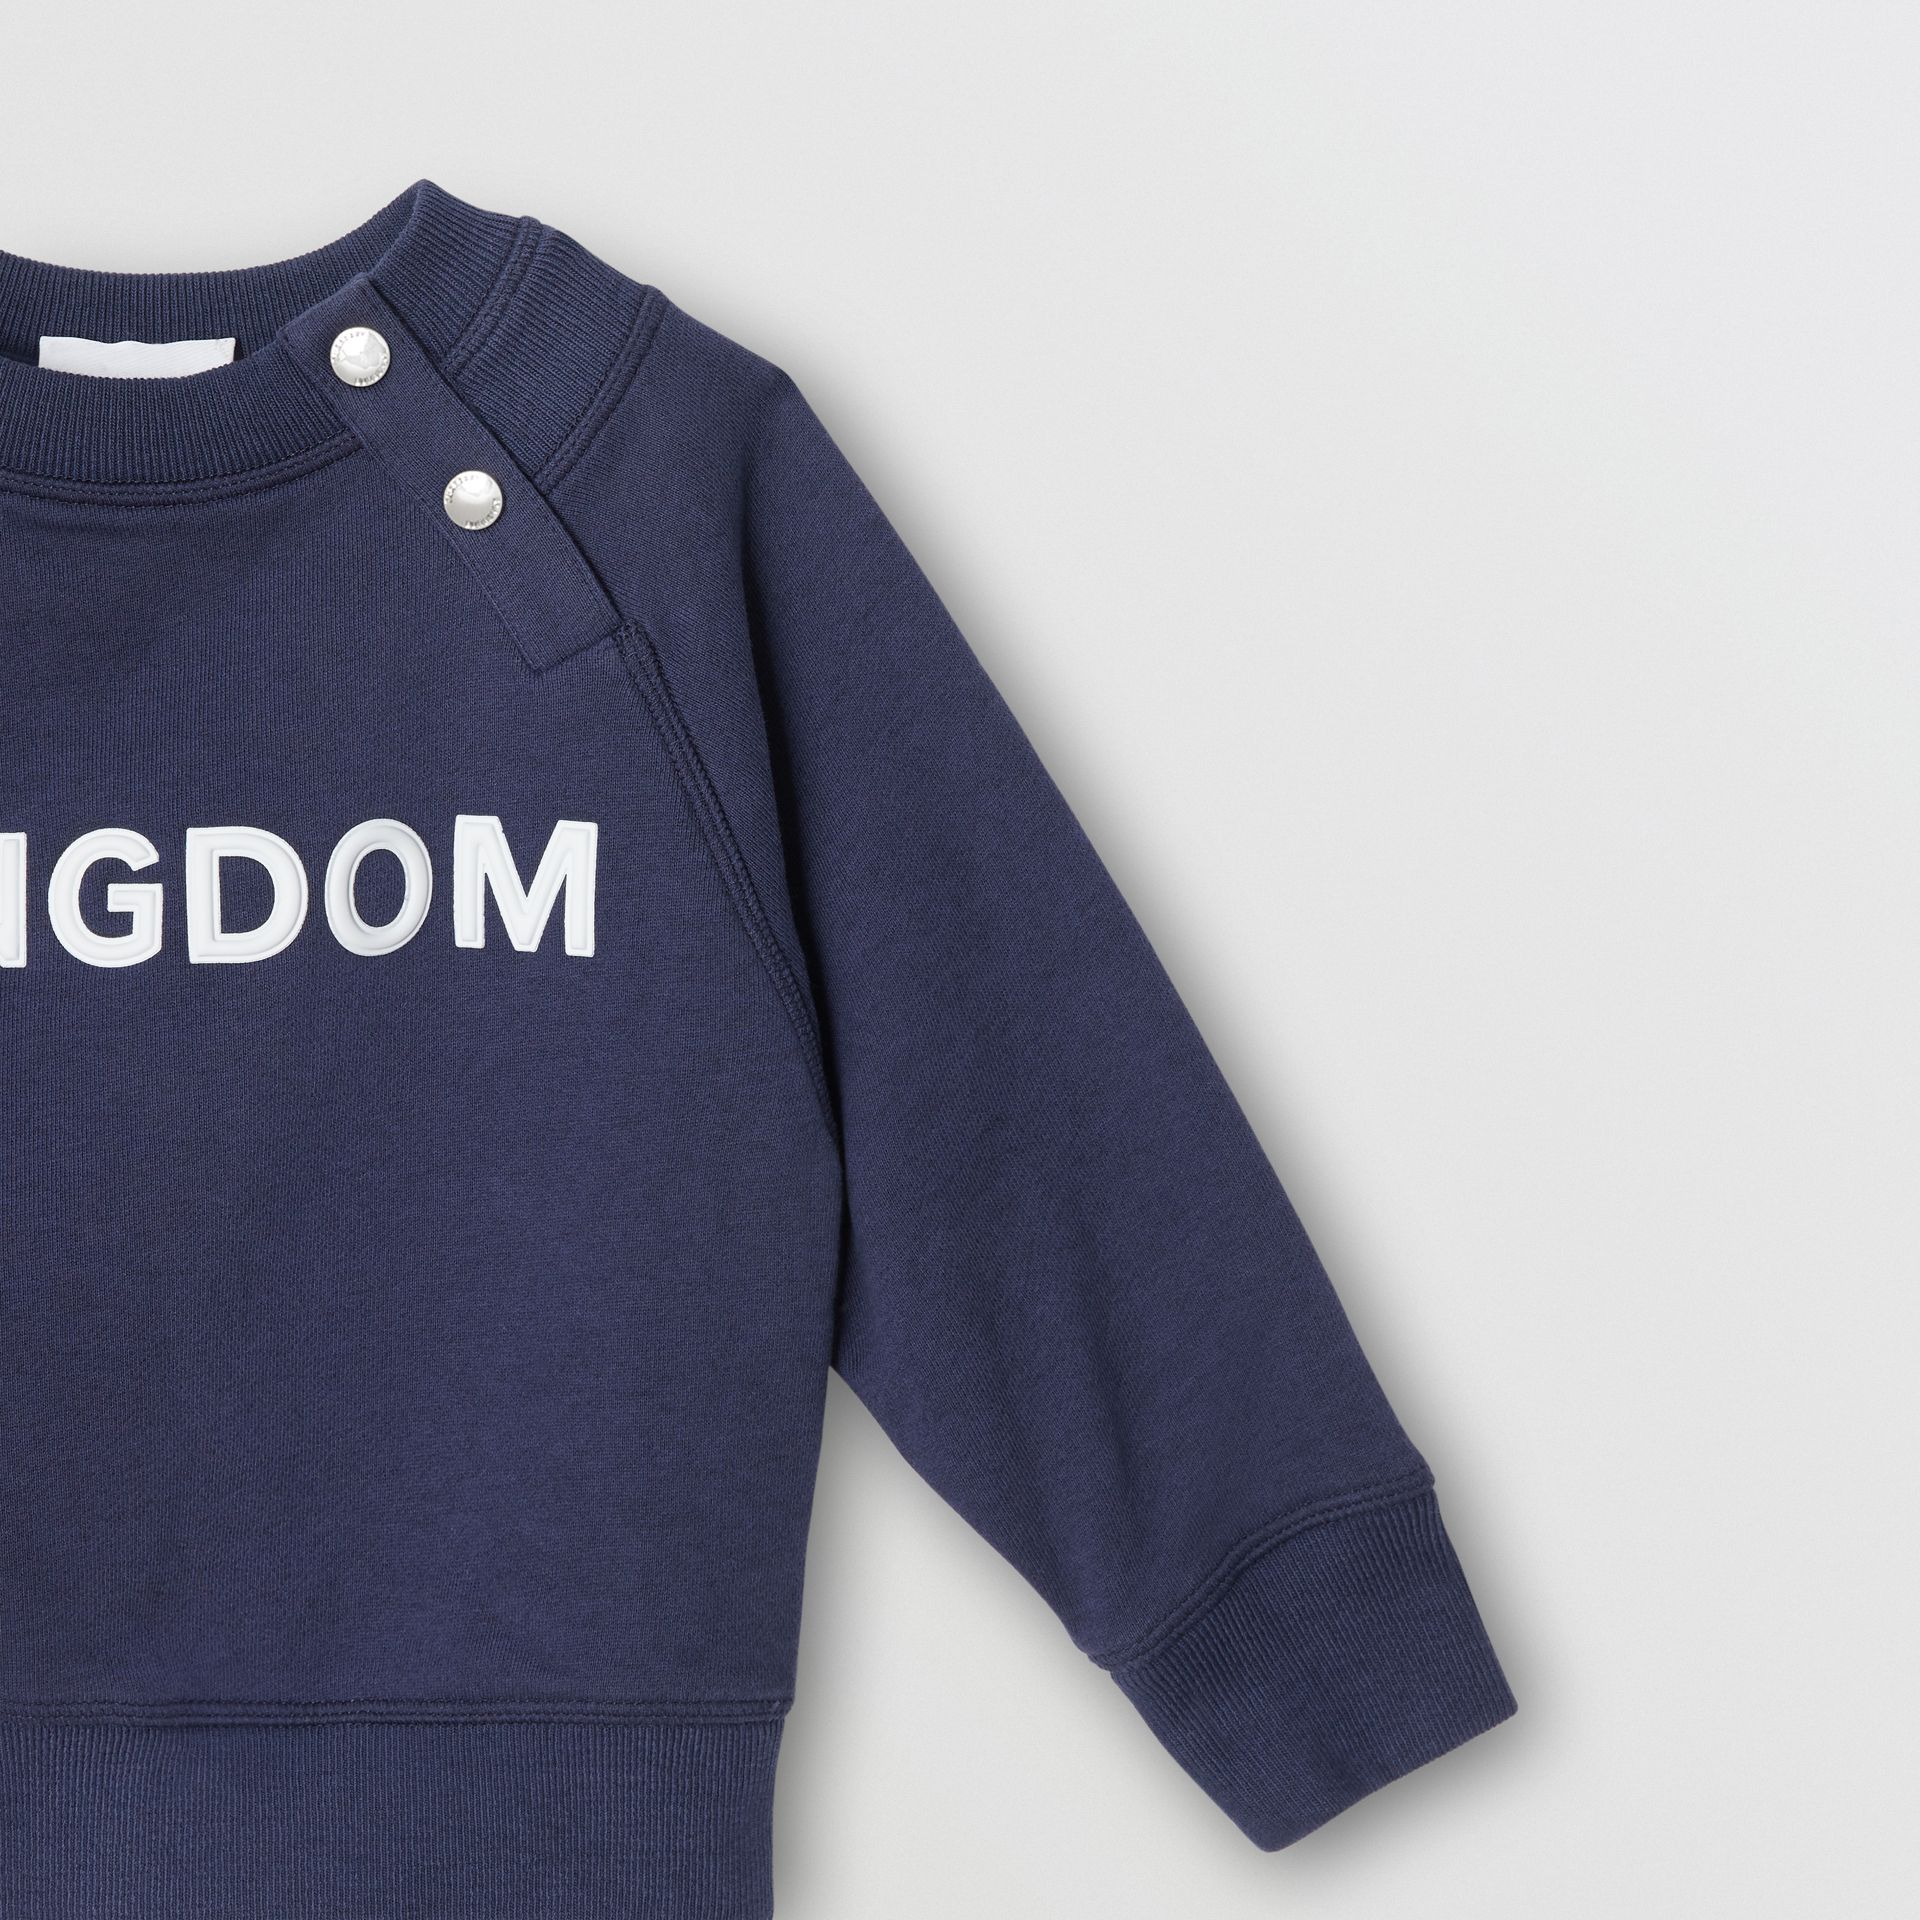 Sweat-shirt en coton Kingdom (Camaïeu De Bleus Ardoise) - Enfant | Burberry - photo de la galerie 4